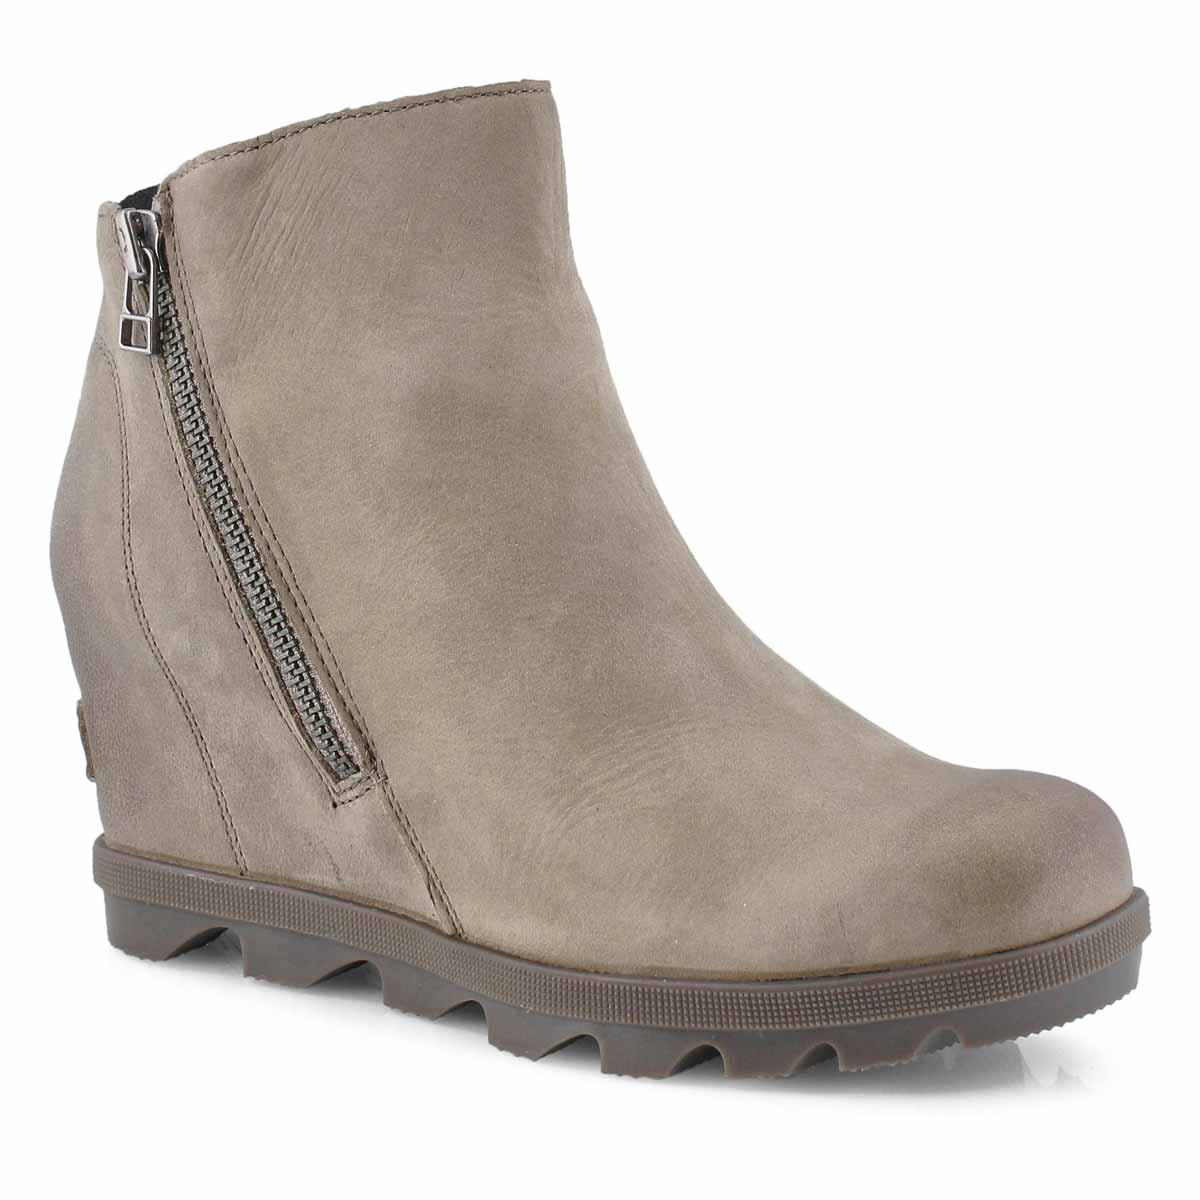 Lds JOA Wedge II Zip ash brown wtpf boot